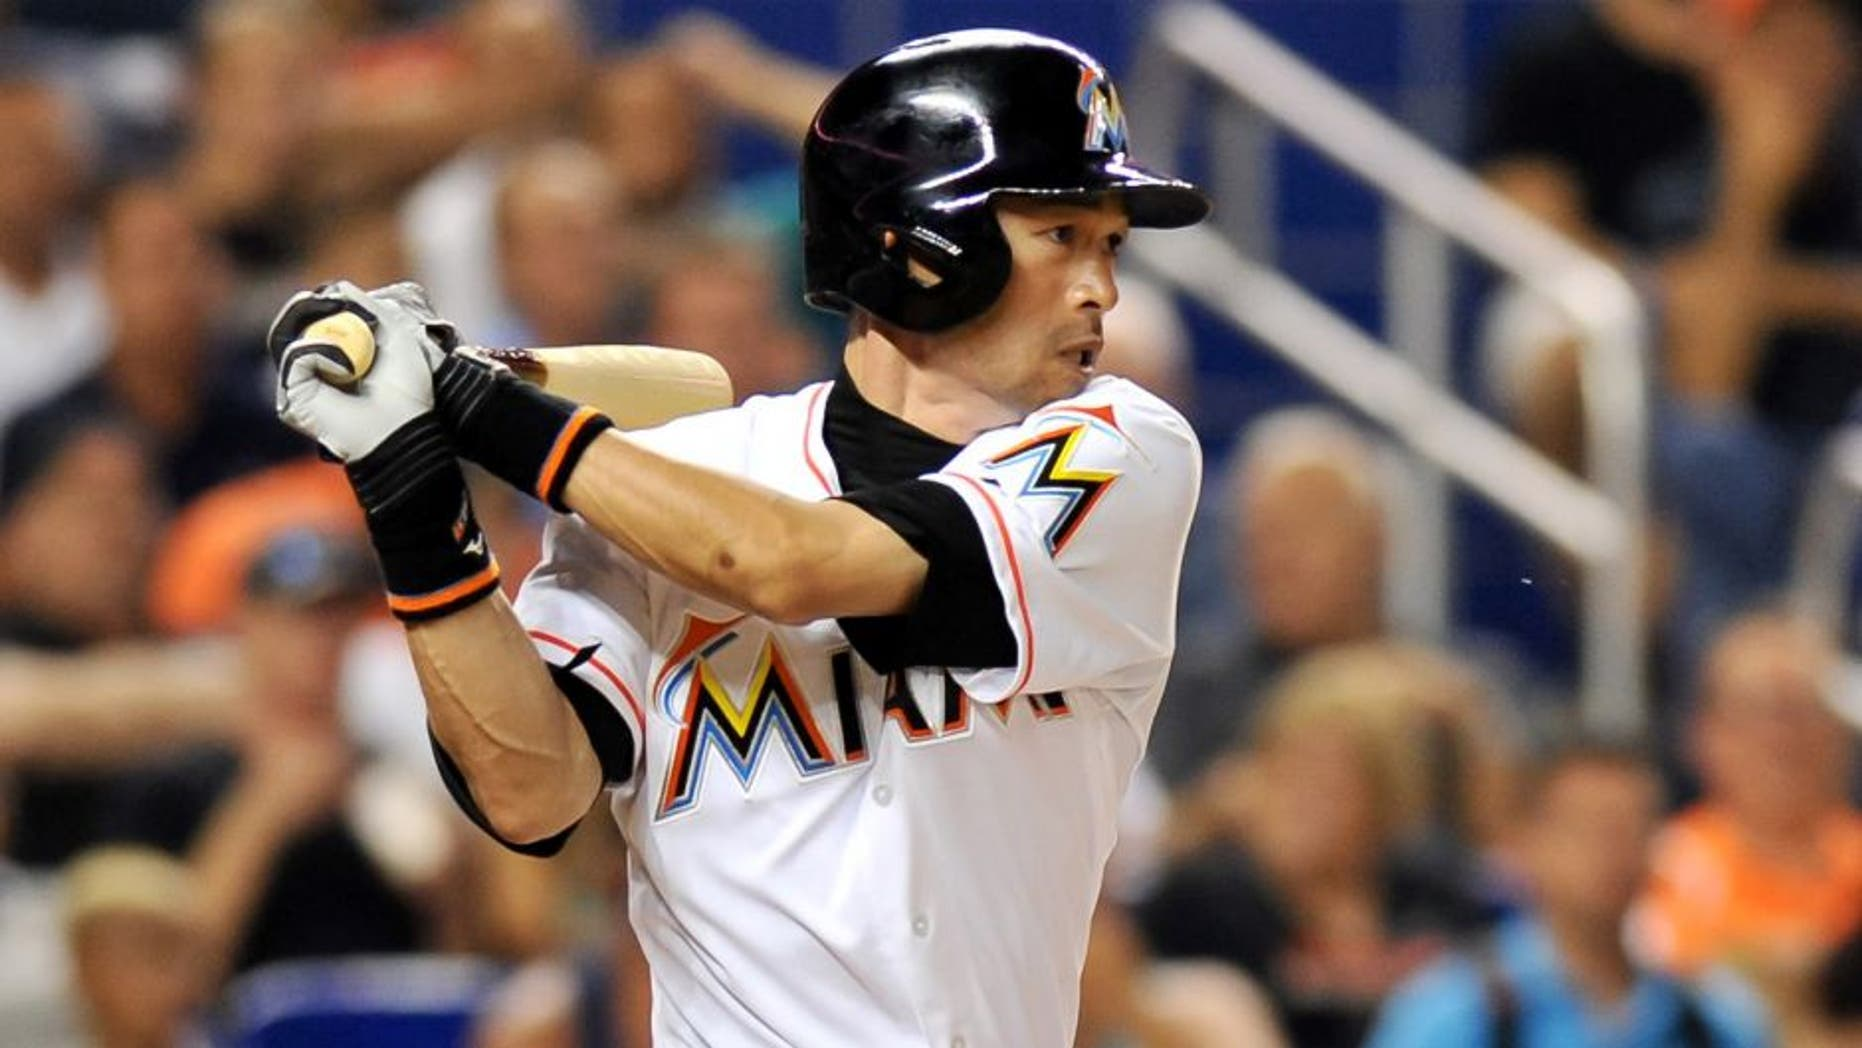 Jul 28, 2015; Miami, FL, USA; Miami Marlins left fielder Ichiro Suzuki (51) connects for a base hit during the fifth inning against the Washington Nationals at Marlins Park. Mandatory Credit: Steve Mitchell-USA TODAY Sports